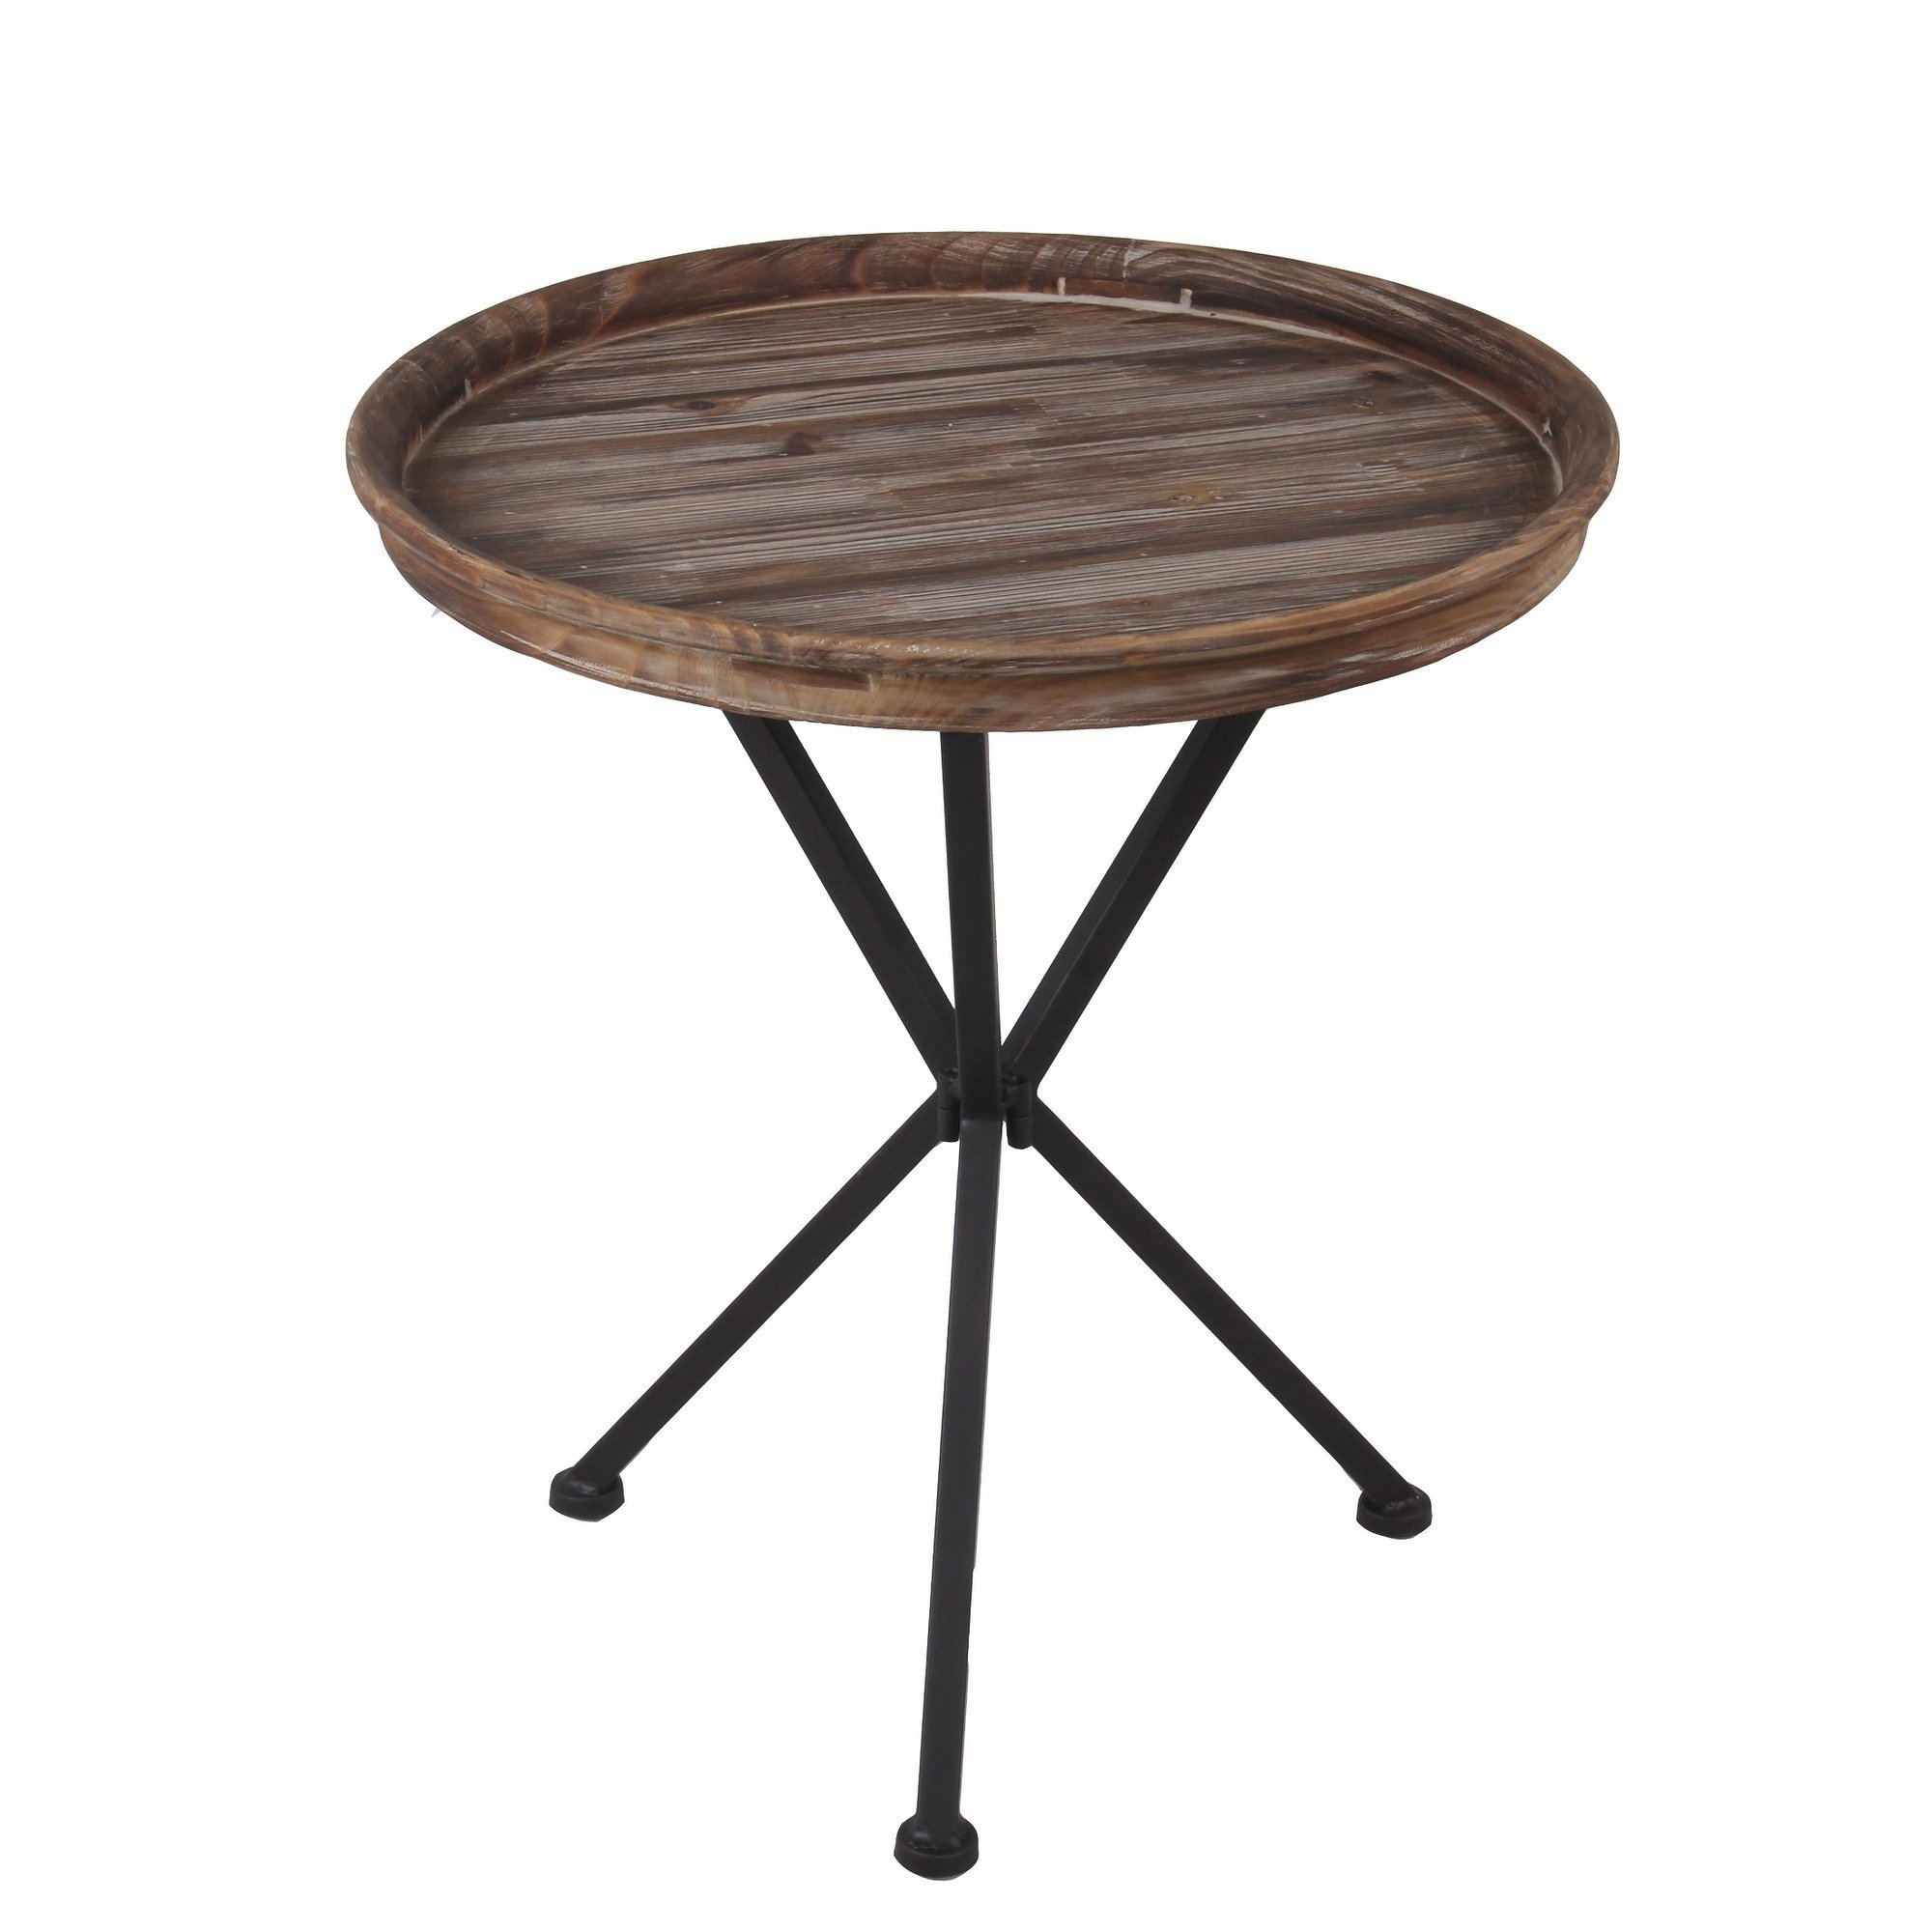 privilege round accent table featuring wood tray top free shipping today console with wine storage ikea bedside drawers black marble set tall bistro and chairs indoor battery